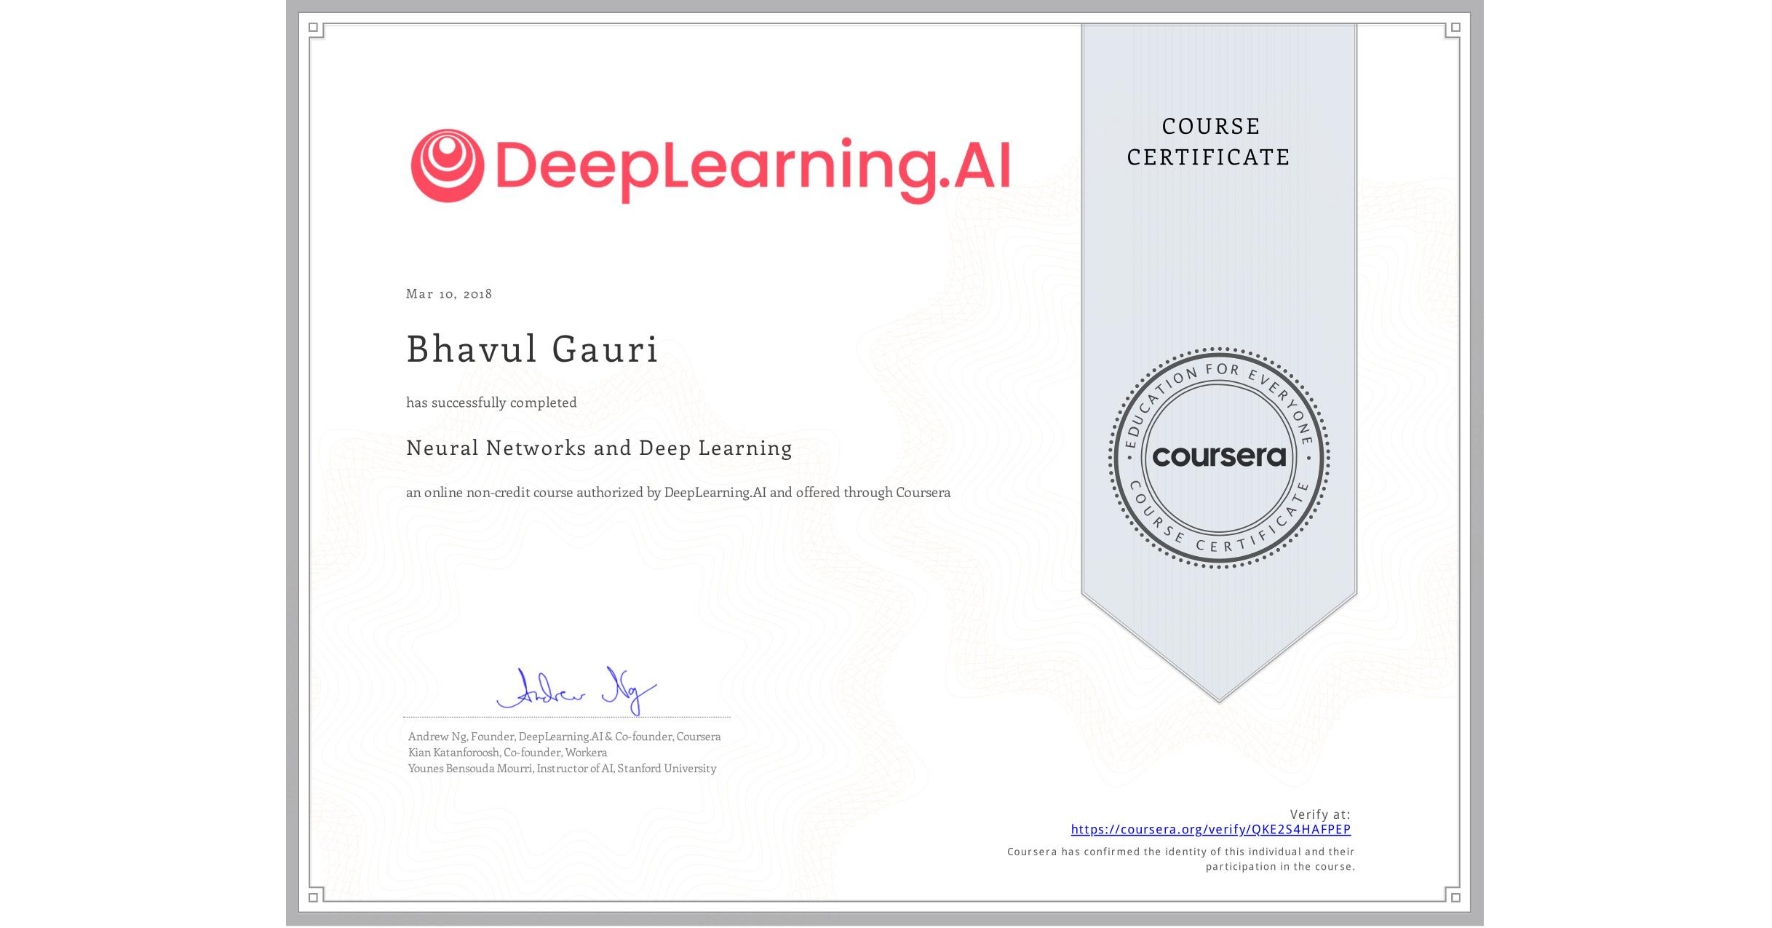 View certificate for Bhavul Gauri, Neural Networks and Deep Learning, an online non-credit course authorized by DeepLearning.AI and offered through Coursera